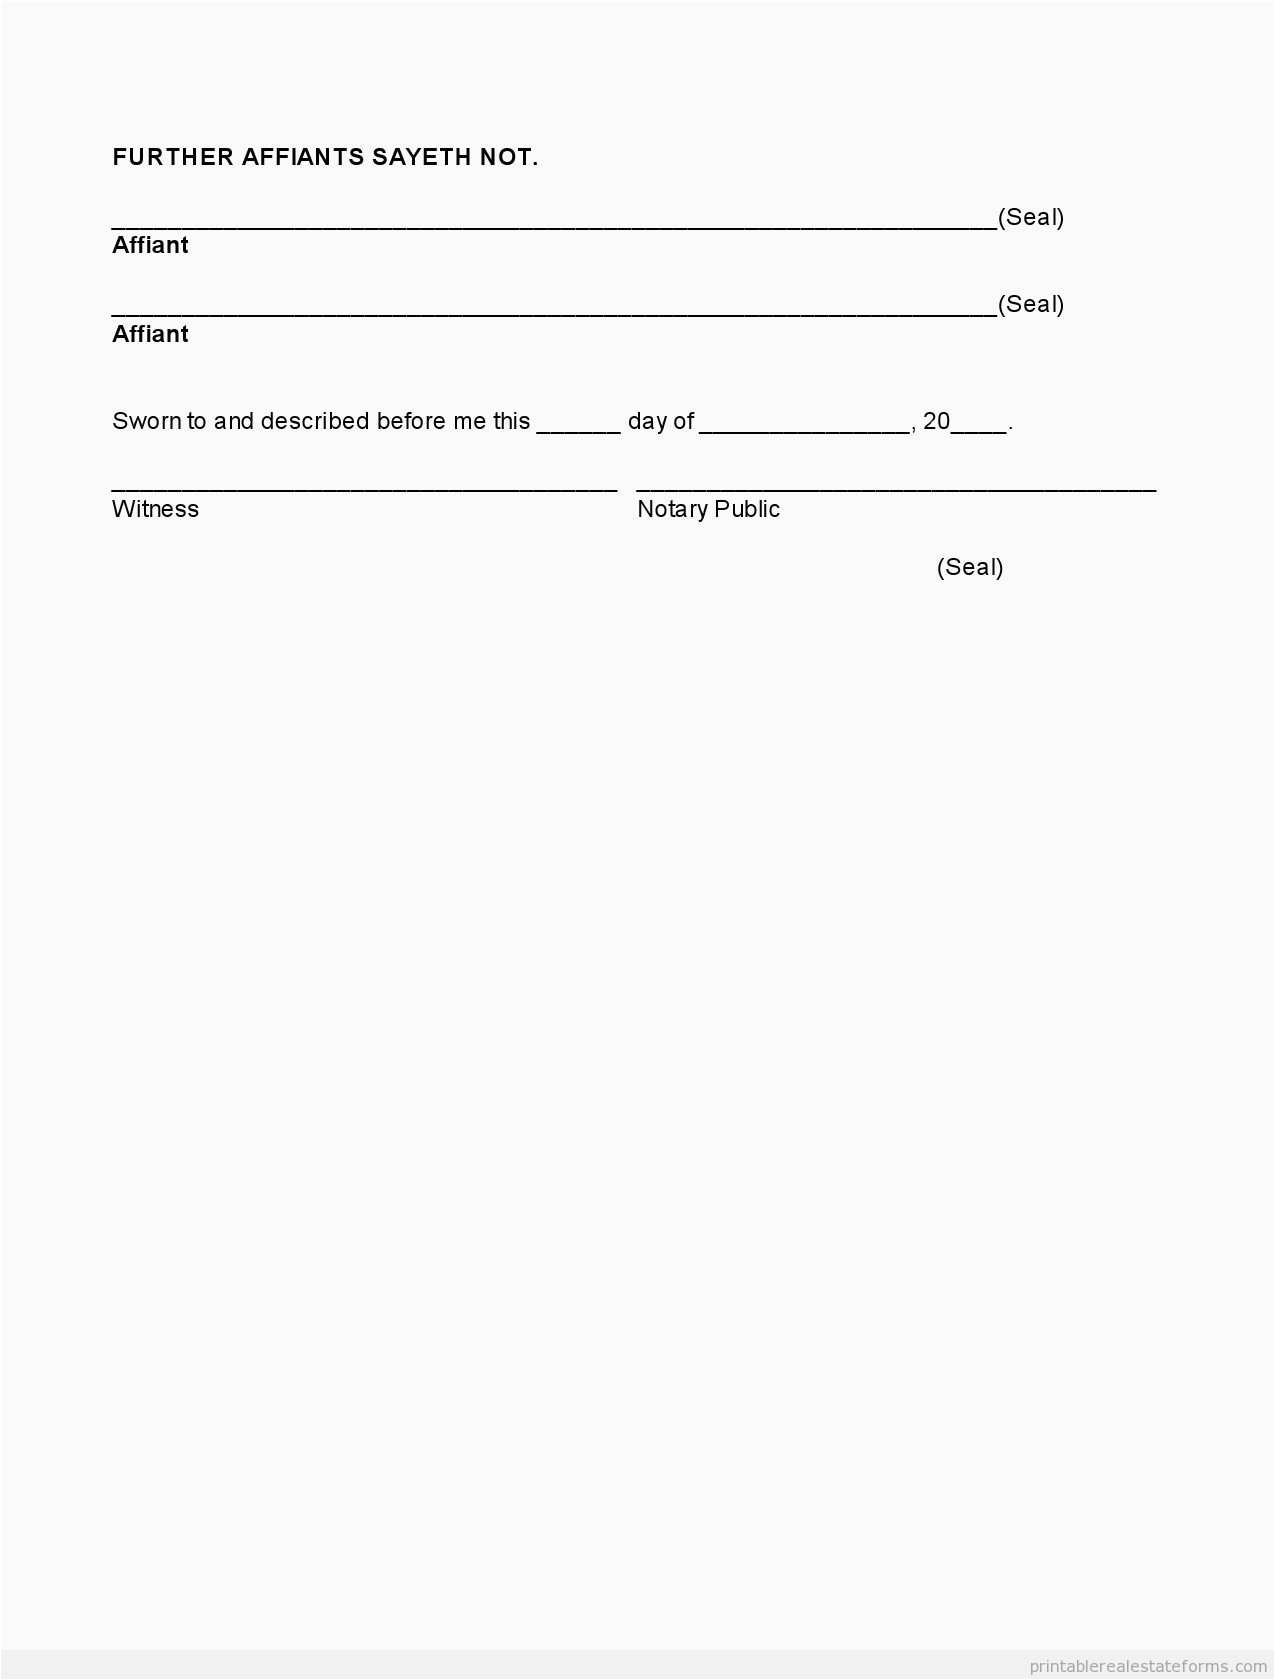 1099 Form Printable Example Copyright Release Form Beautiful 1099 Misc Form Inspirational Picture